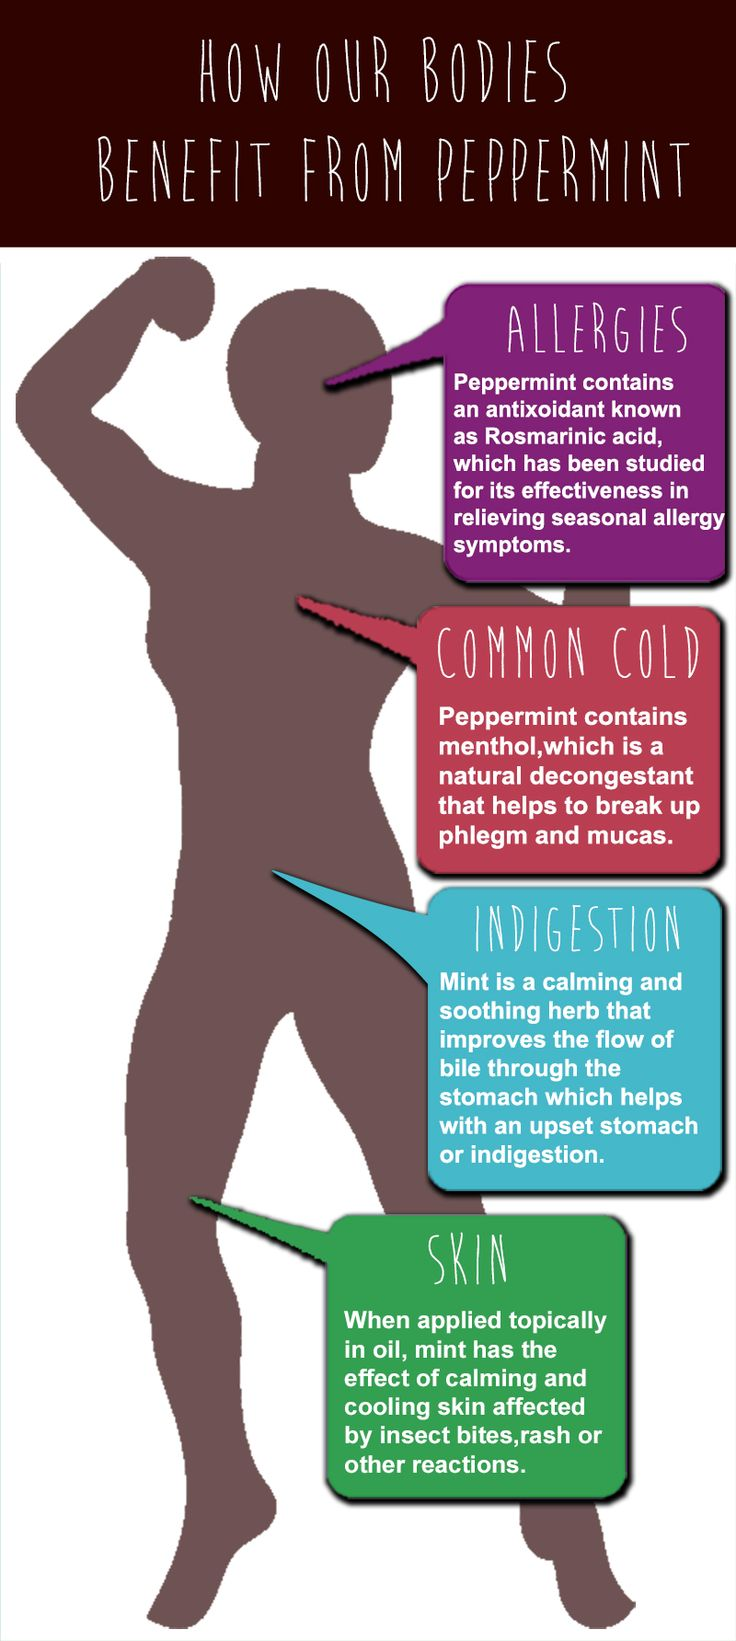 How our bodies benefit from Peppermint.